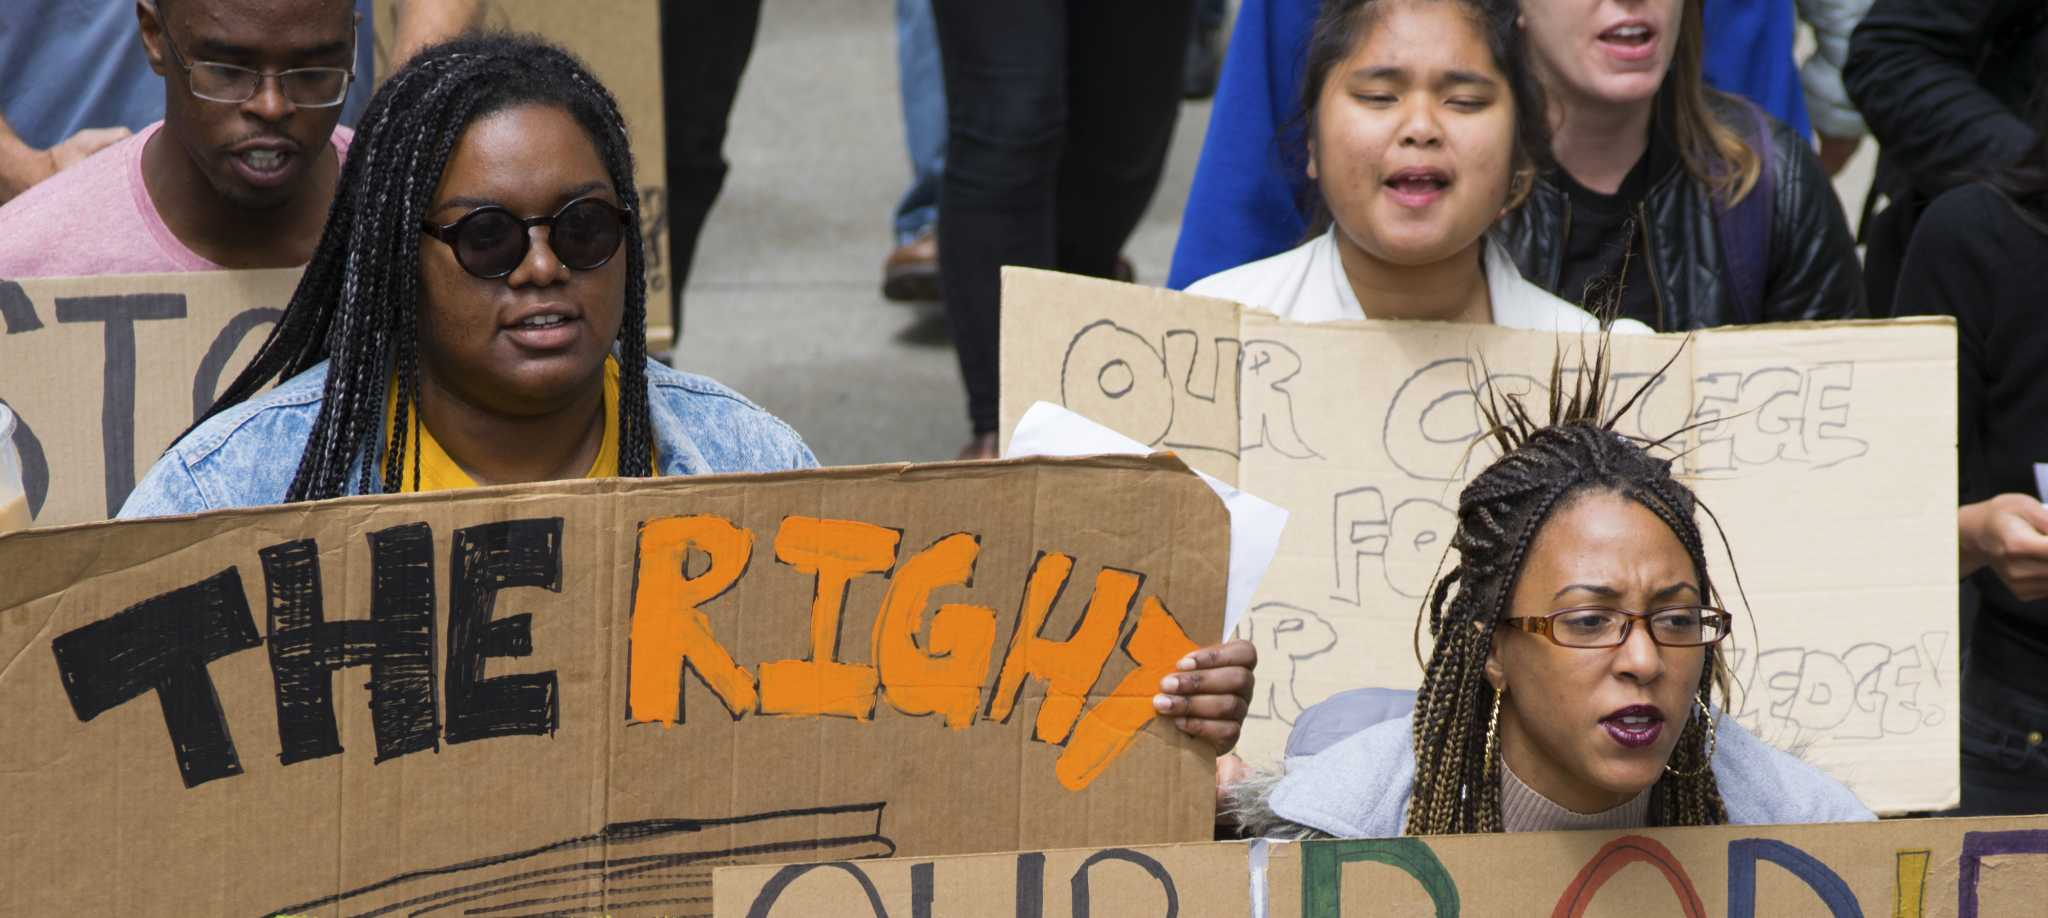 Students go on hunger strike for ethnic studies